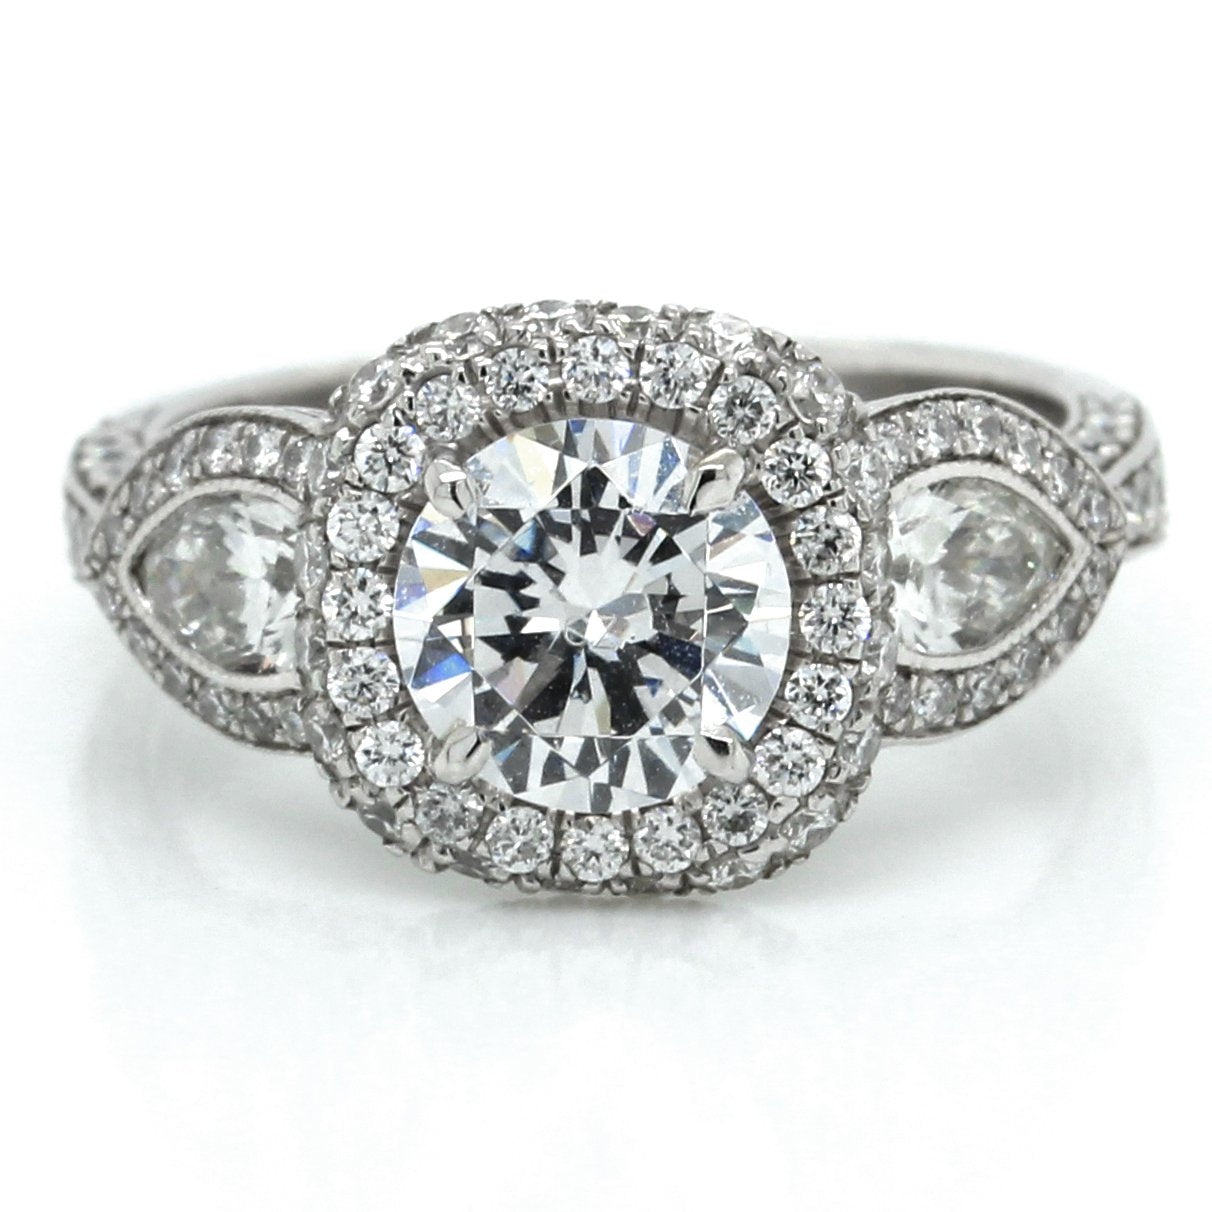 Platinum Halo Engagement Ring with Pave Pear Sides